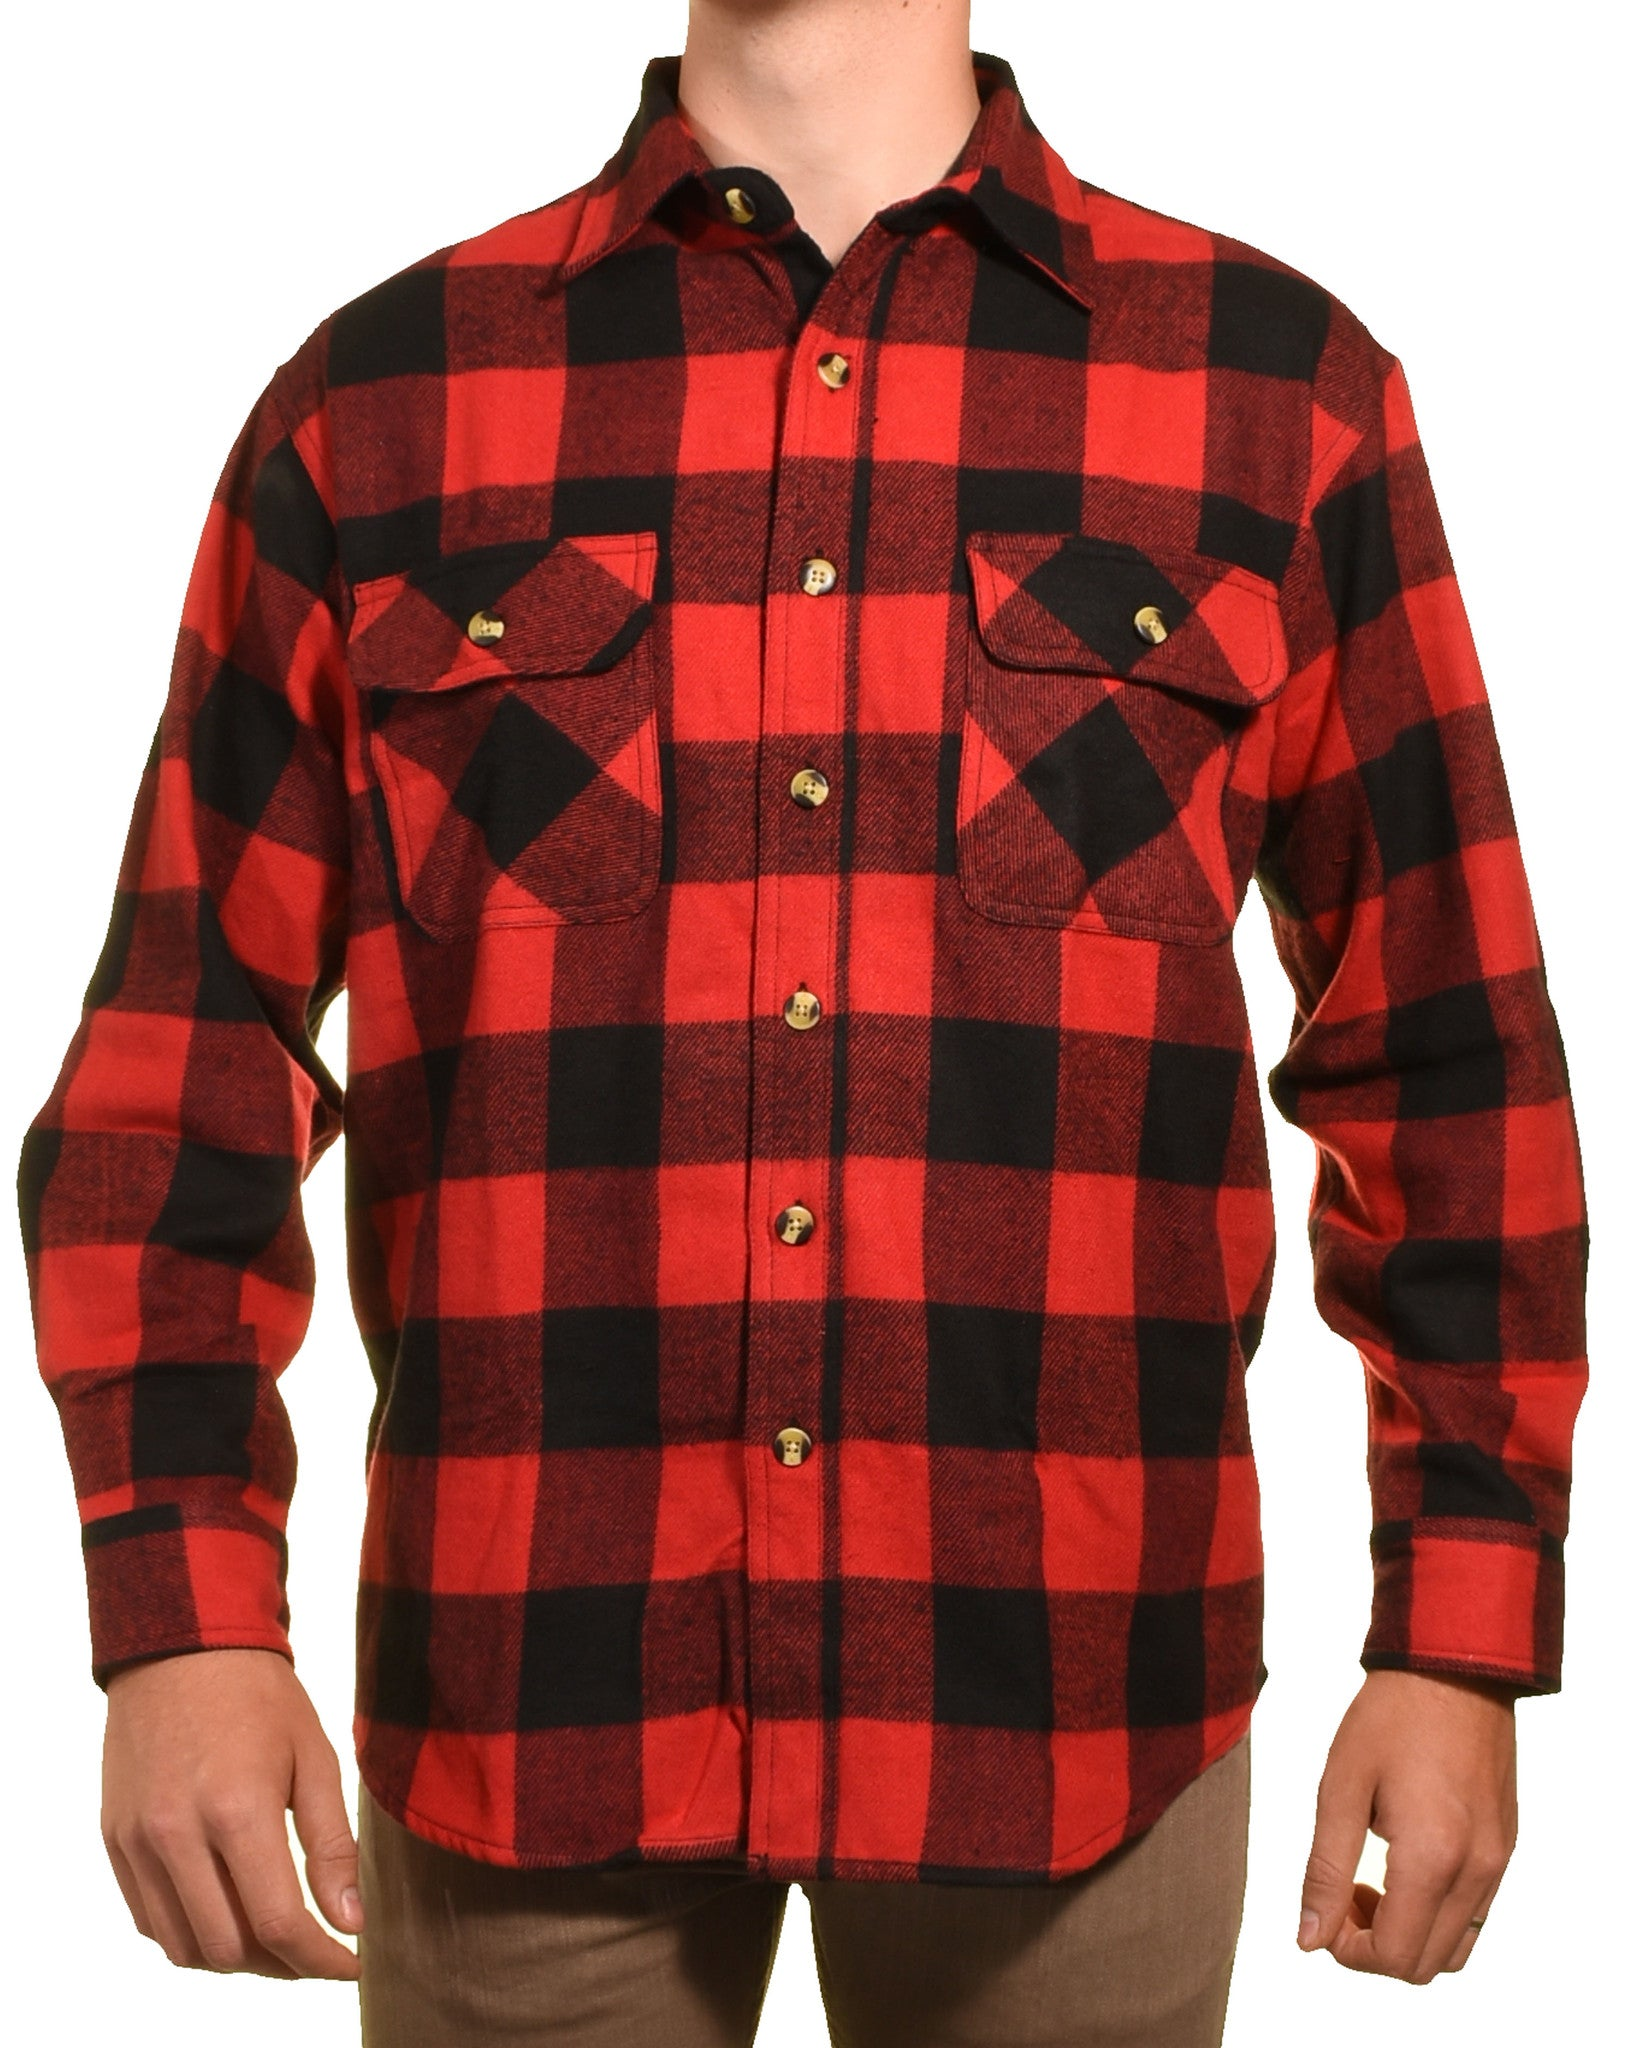 Guides choice pro elite mens heavy duty flannel shirt red for Where to buy cheap plaid shirts